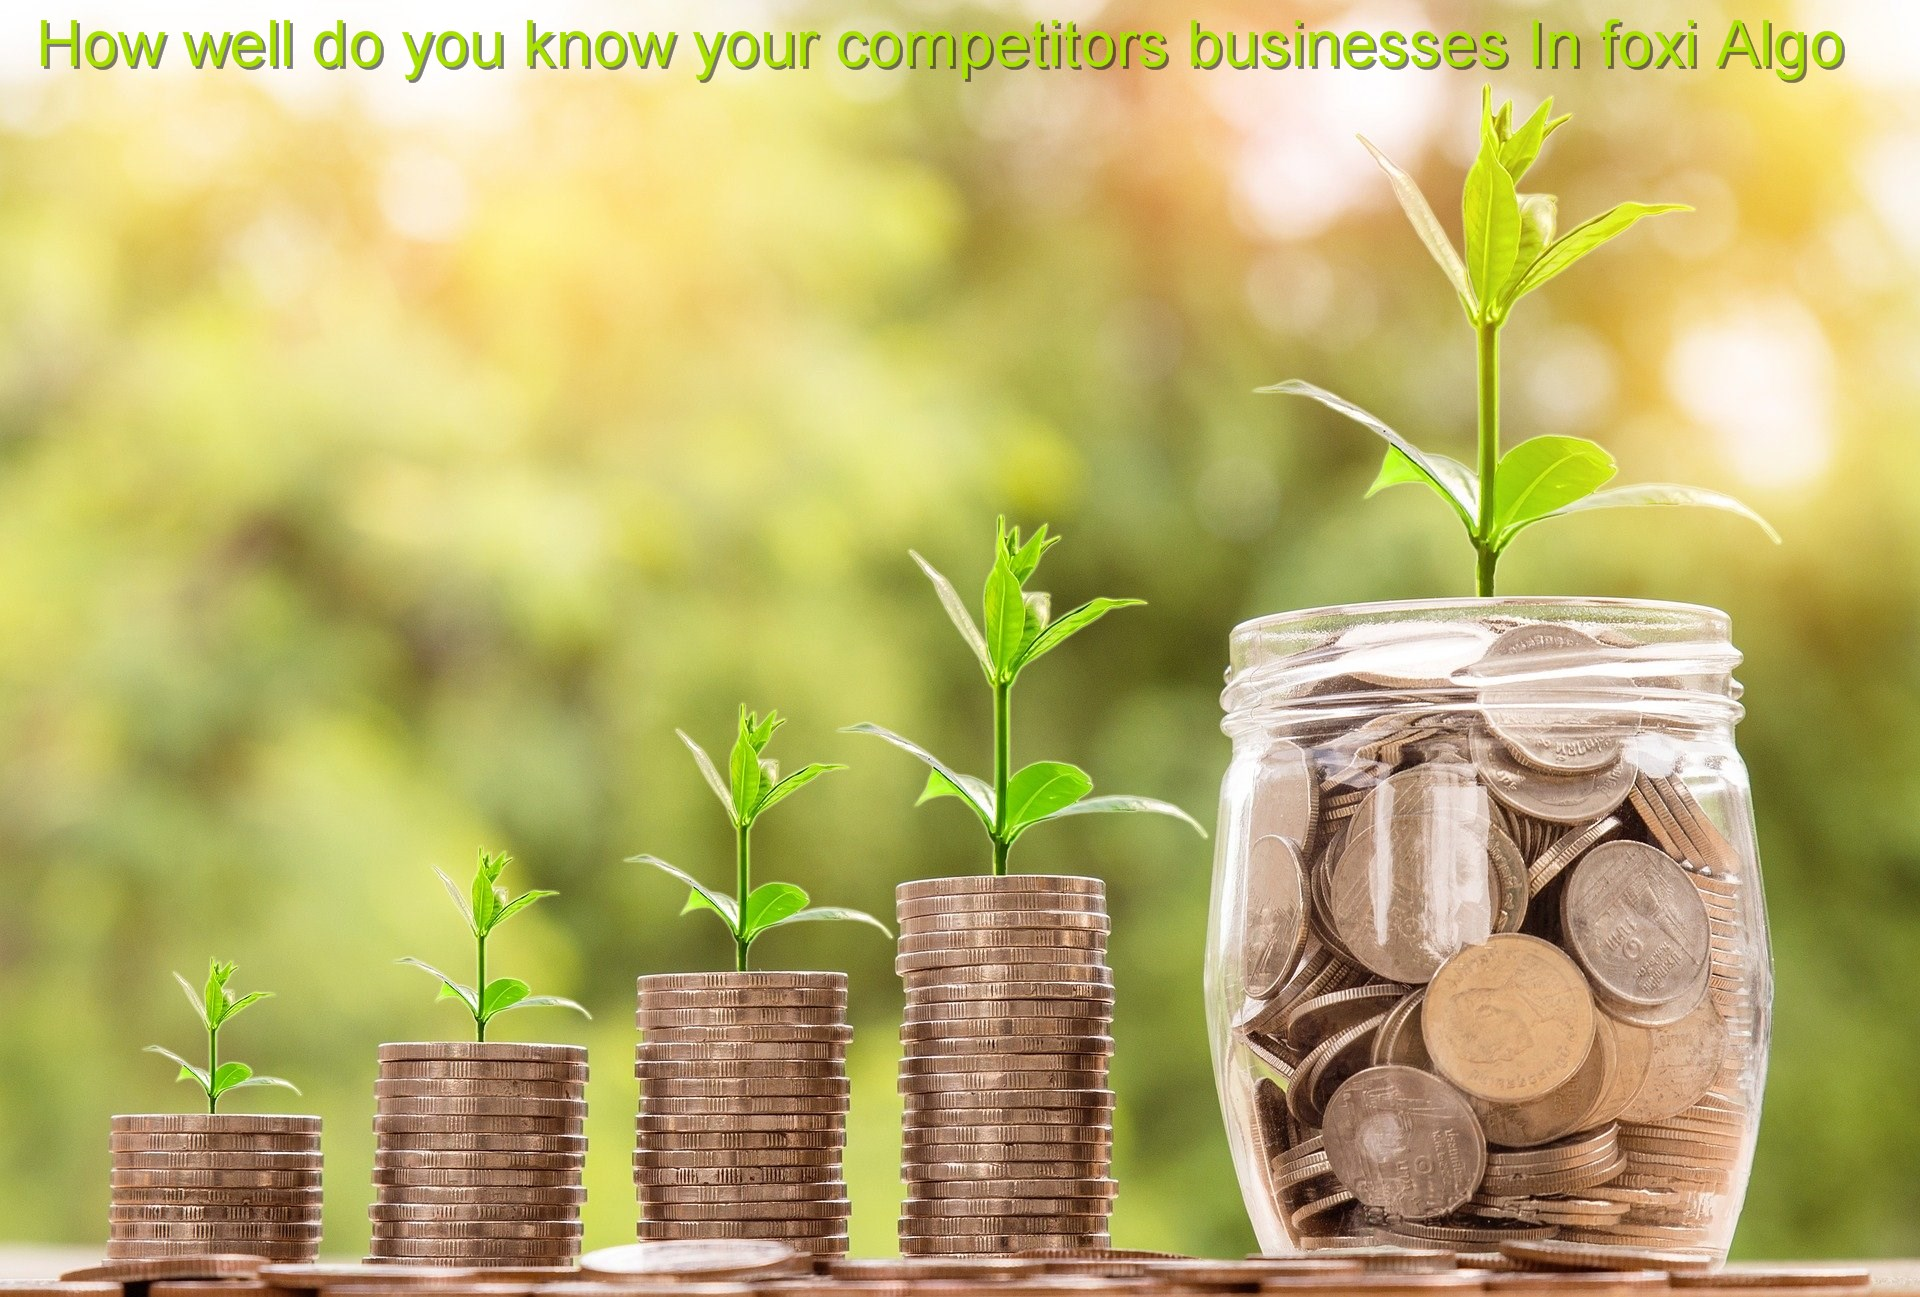 How well do you know your competitors businesses In foxi Algo